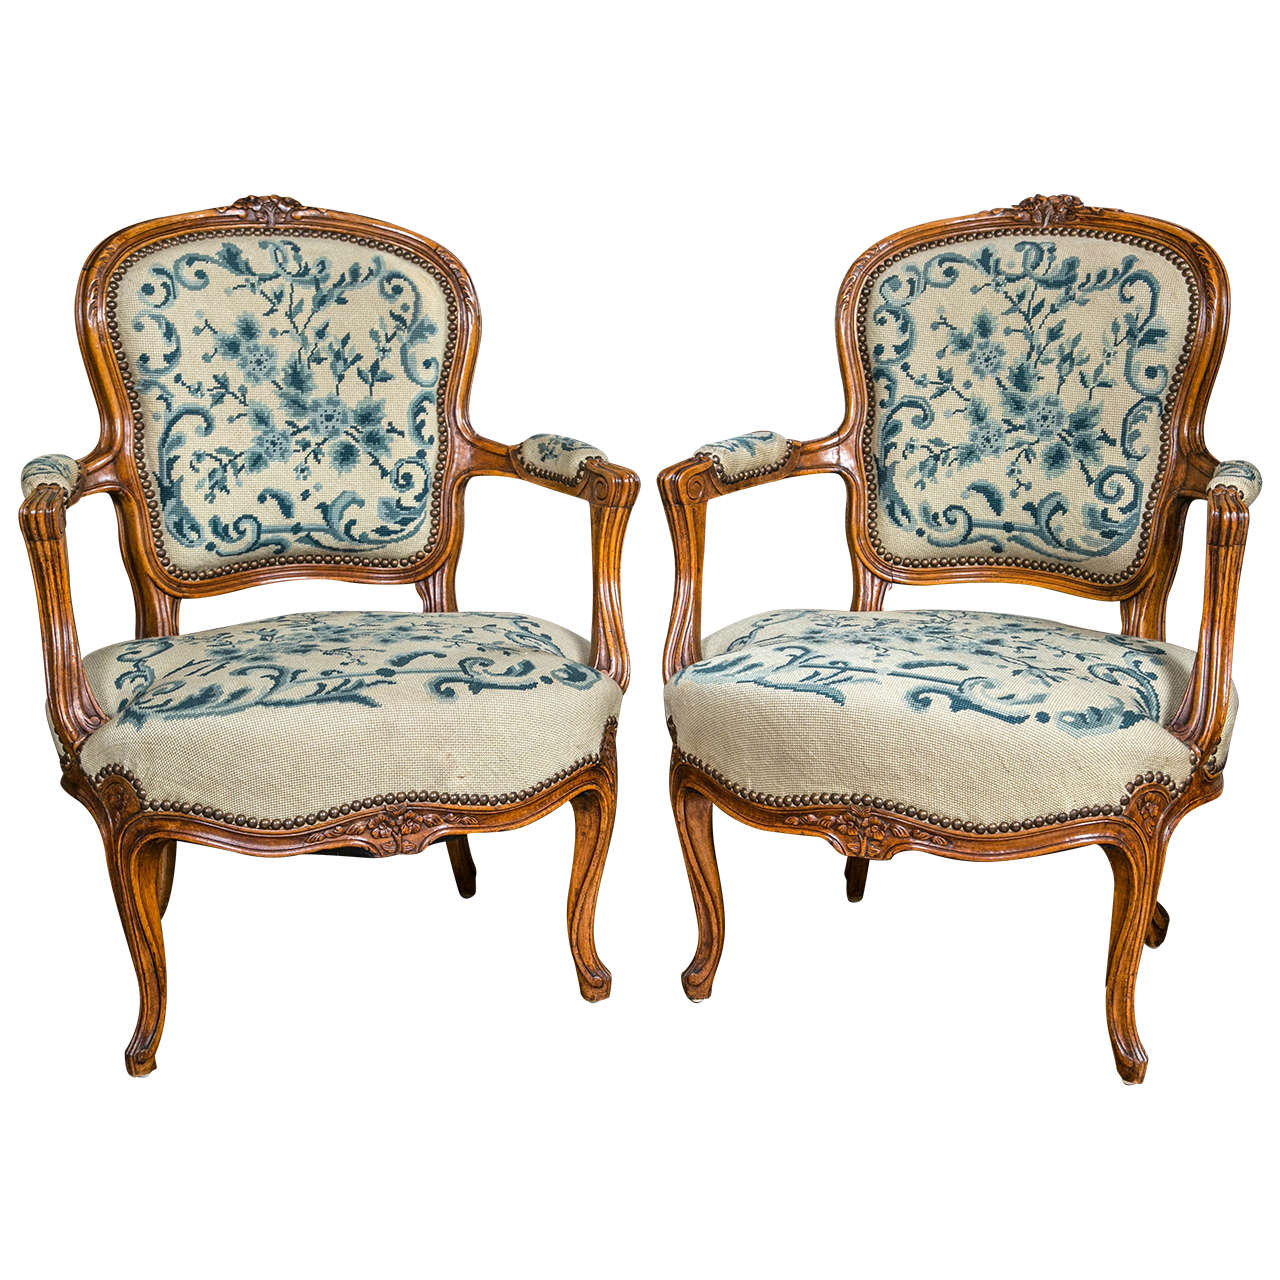 Pair of louis xv style fauteuil chairs for sale at 1stdibs - Fauteuil style louis xv ...